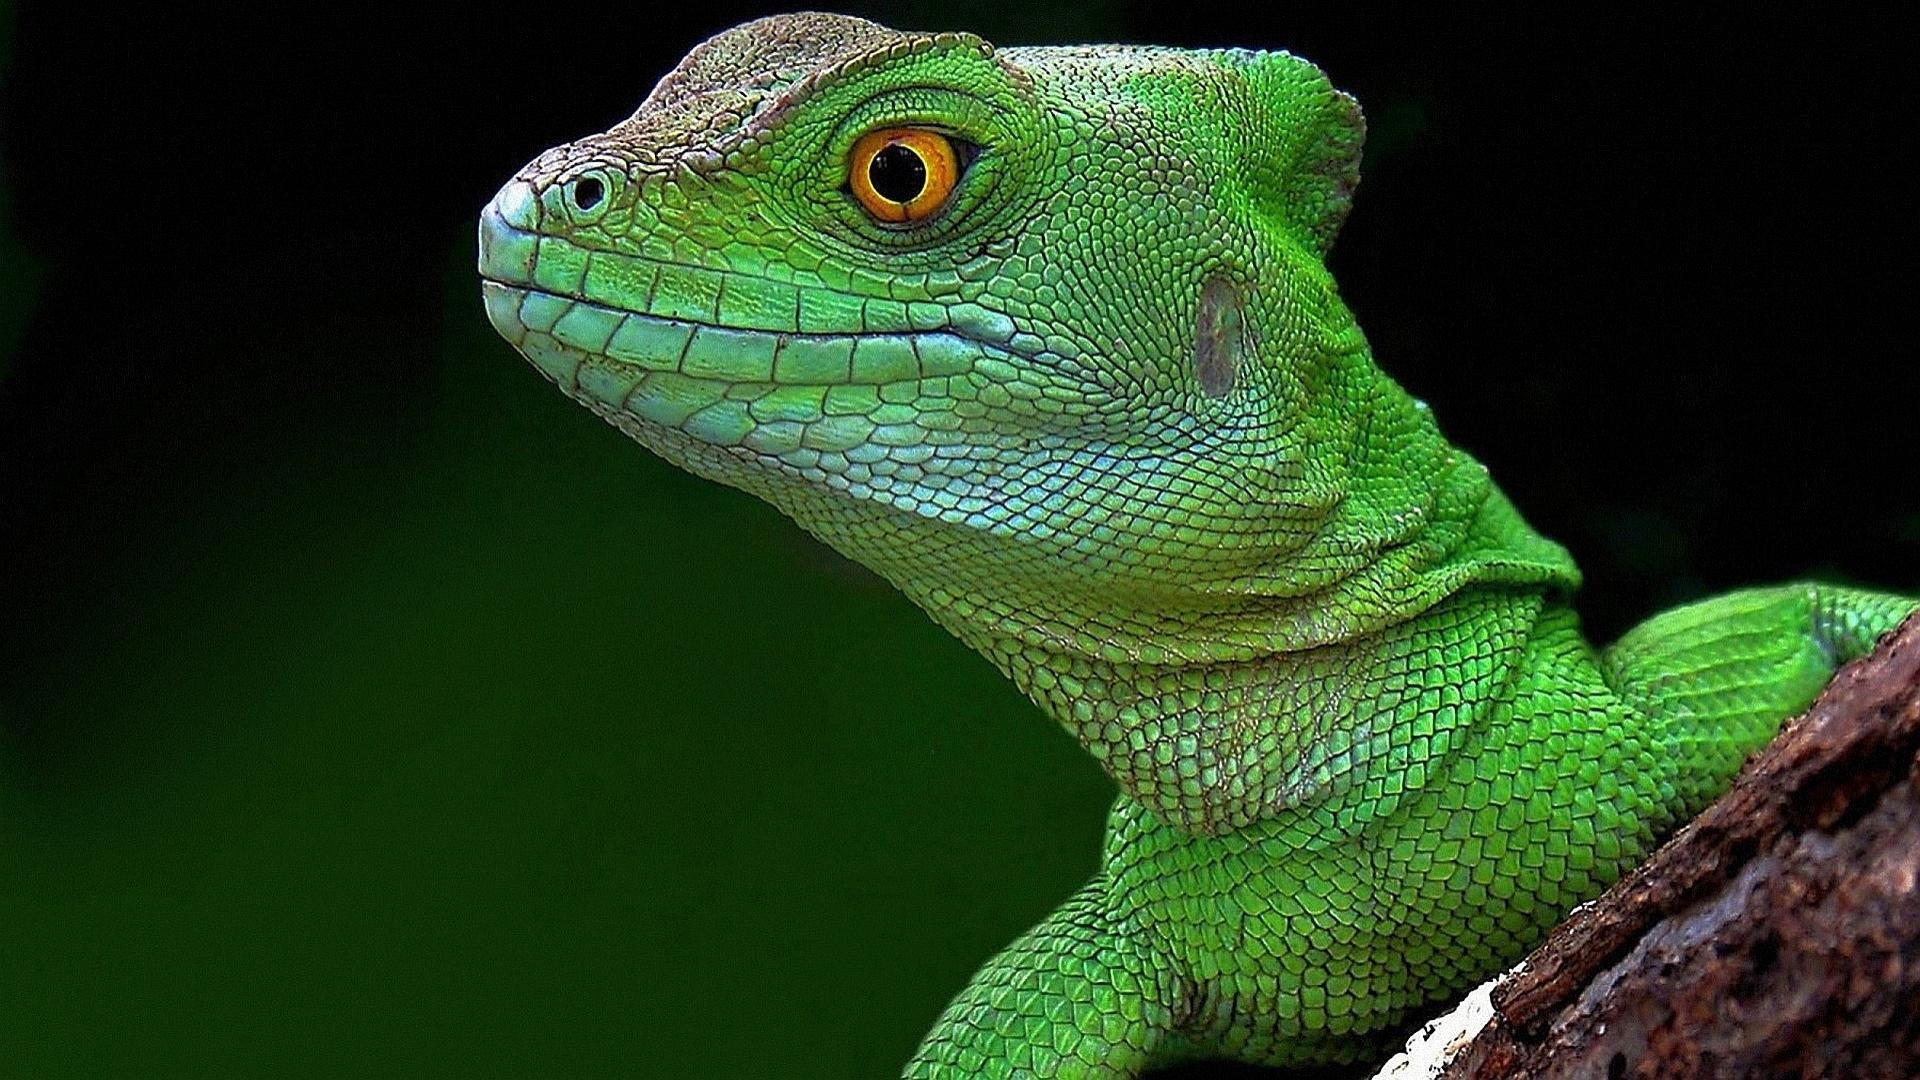 Free download Lizard wallpaper ID:443965 hd 1920x1080 for desktop